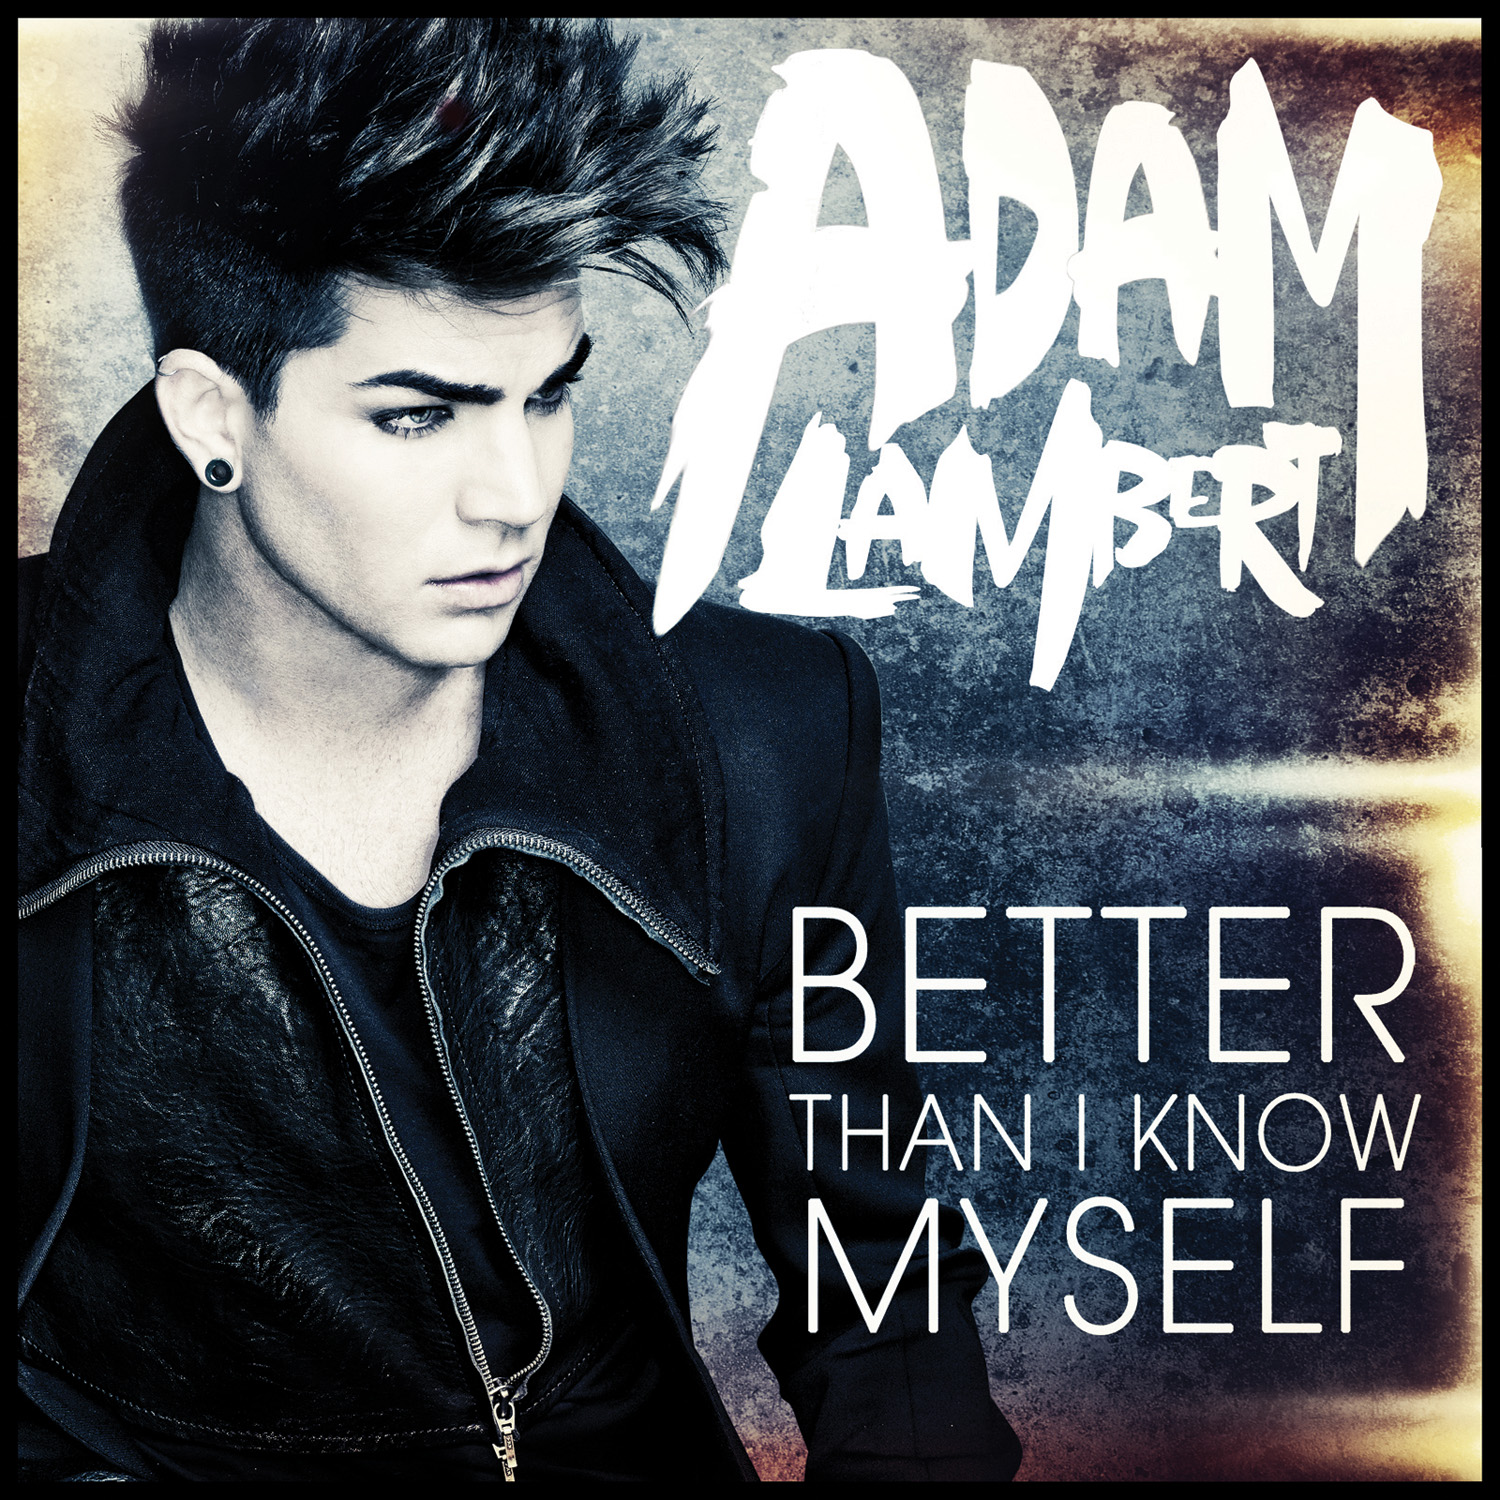 http://3.bp.blogspot.com/-p7NE4-NOYtw/Tus4kIXoakI/AAAAAAAABnQ/pdjzdz_LwMI/s1600/COVER+ART+-+BETTER+THAN+I+KNOW+MYSELF+-+ADAM+LAMBERT+SINGLE.jpg